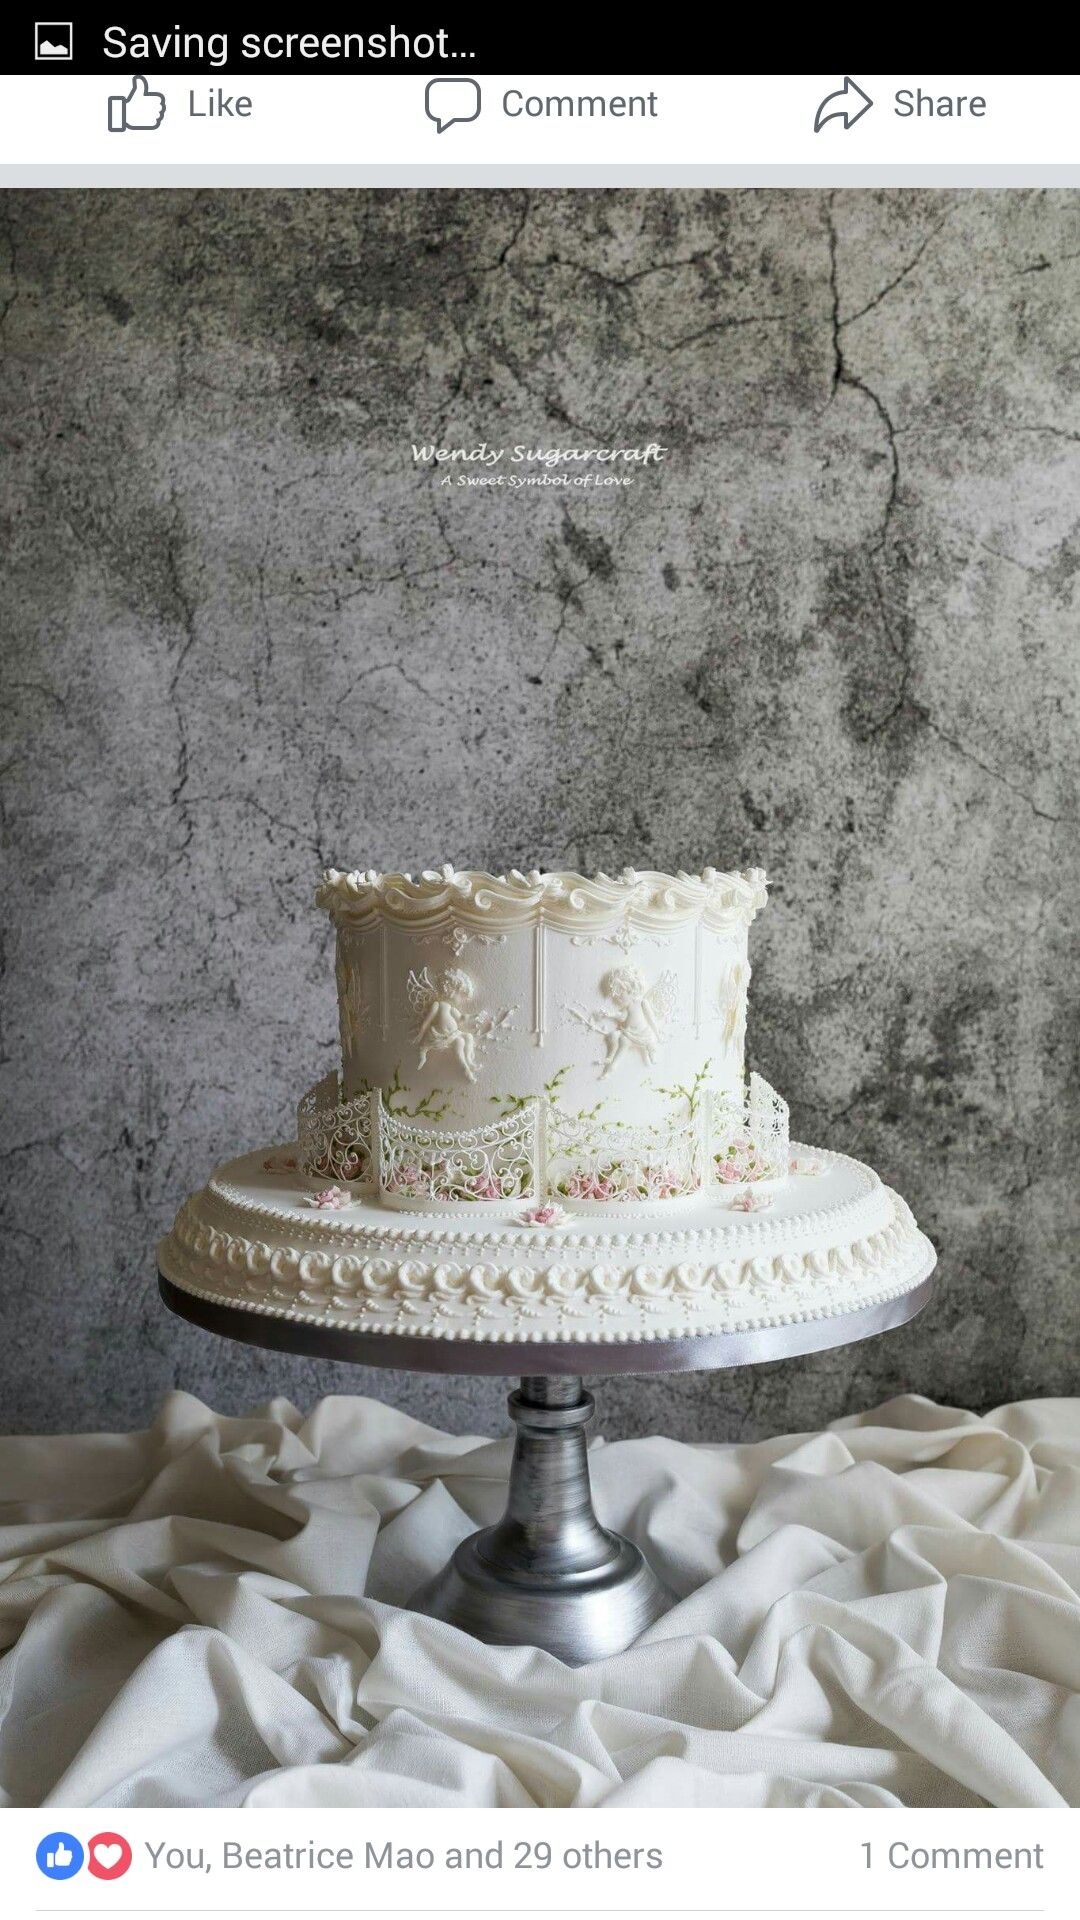 Pin by debra lawson on lambeth nirvana royal icing collars royal icing cakes symbols of love small weddings small wedding cakes cake wedding engagement cakes decorating cakes sweet cakes cake creations biocorpaavc Image collections